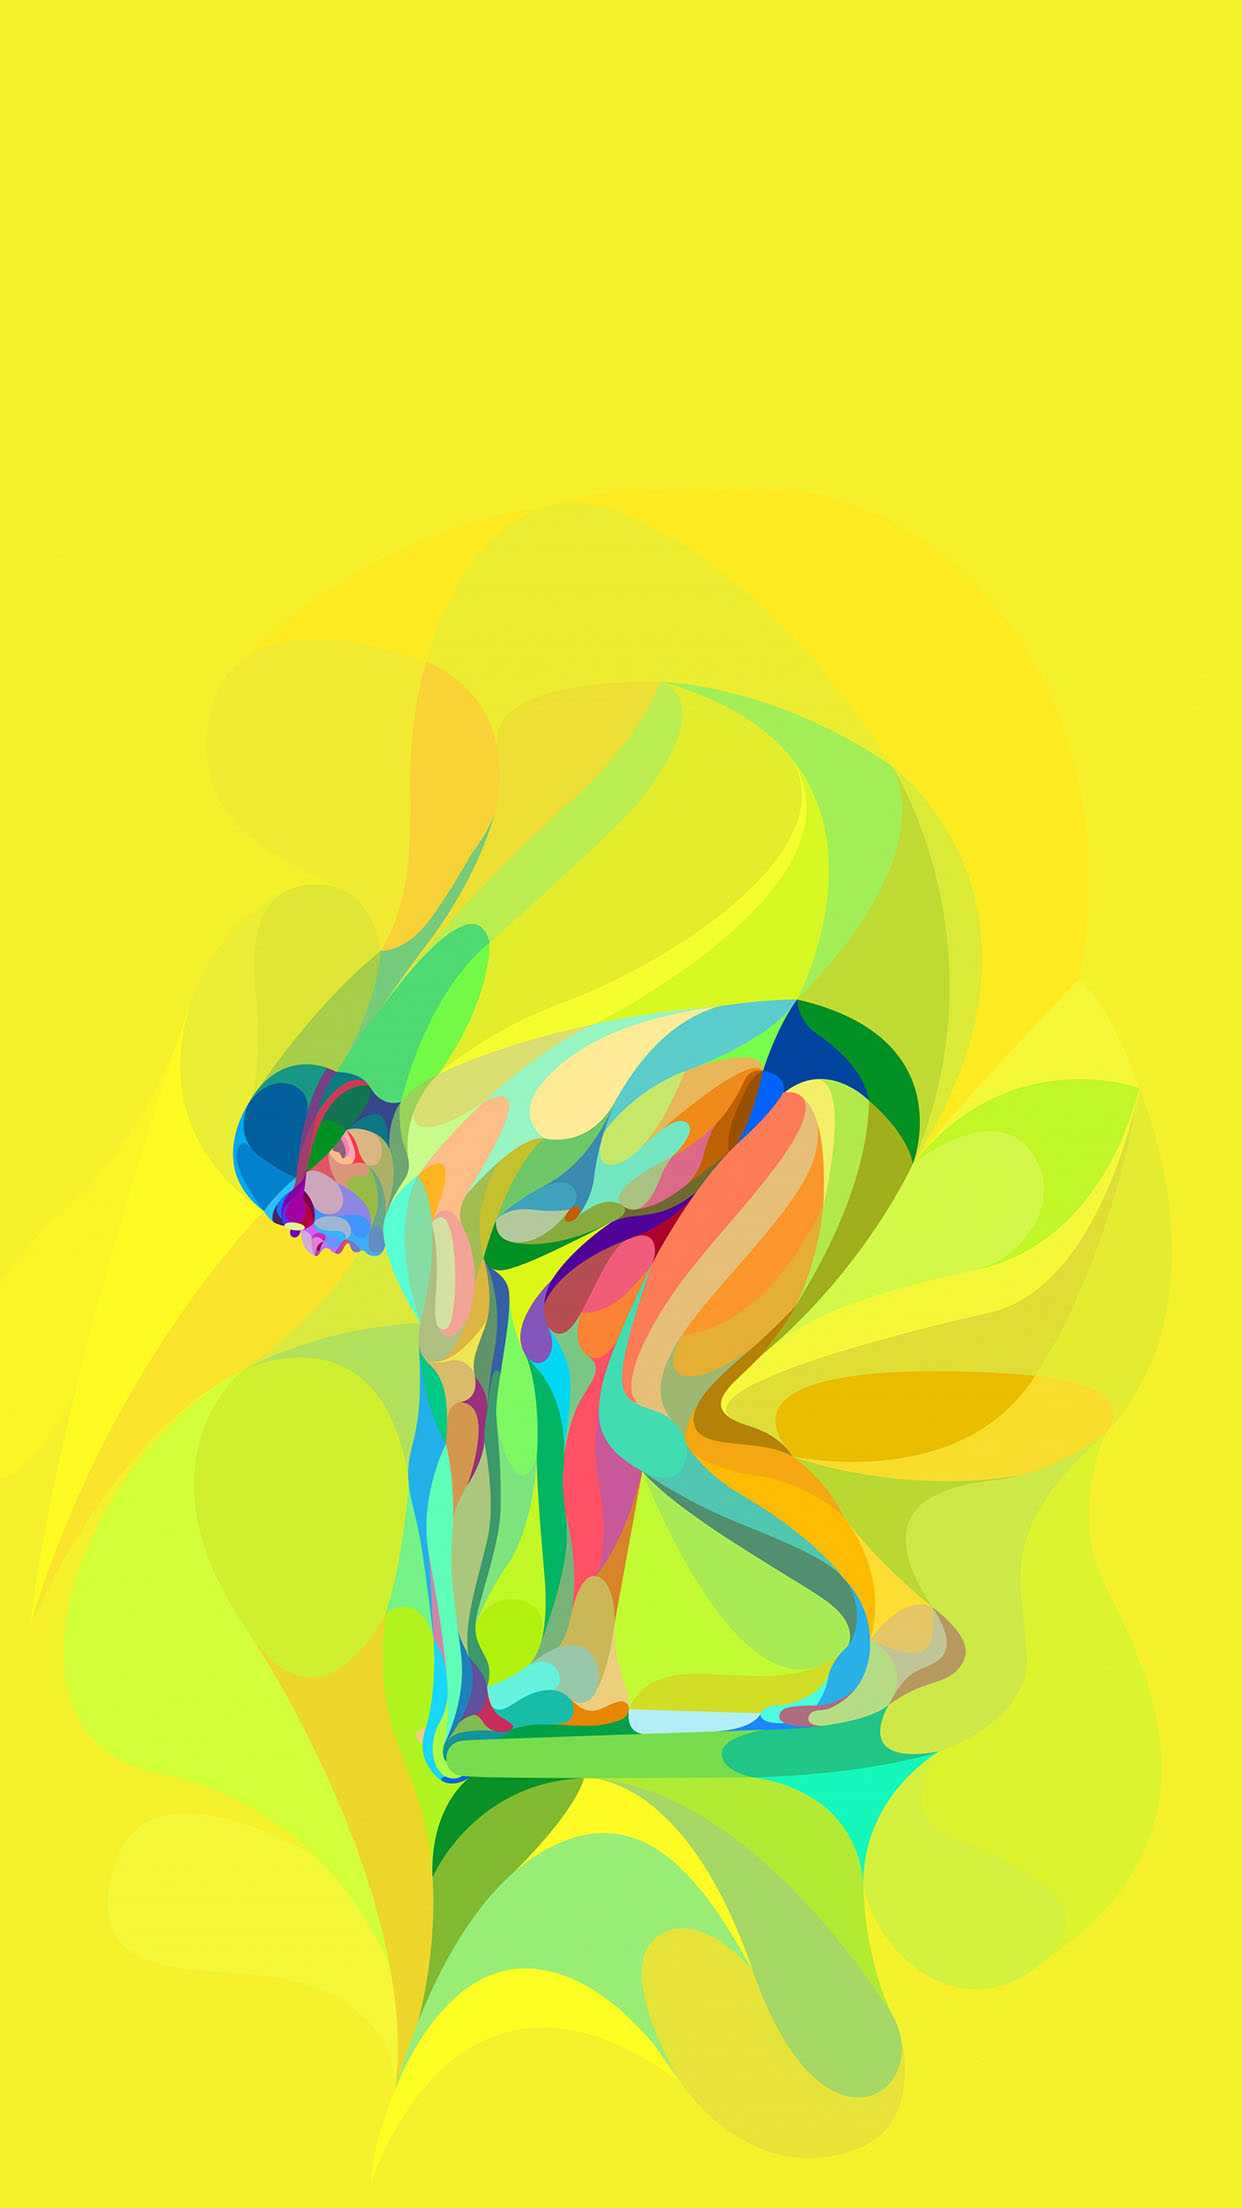 JO RIO 2016 OLYMPICS SWIMMING 3Wallpapers iPhone Parallax JO RIO 2016 Olympics Swimming